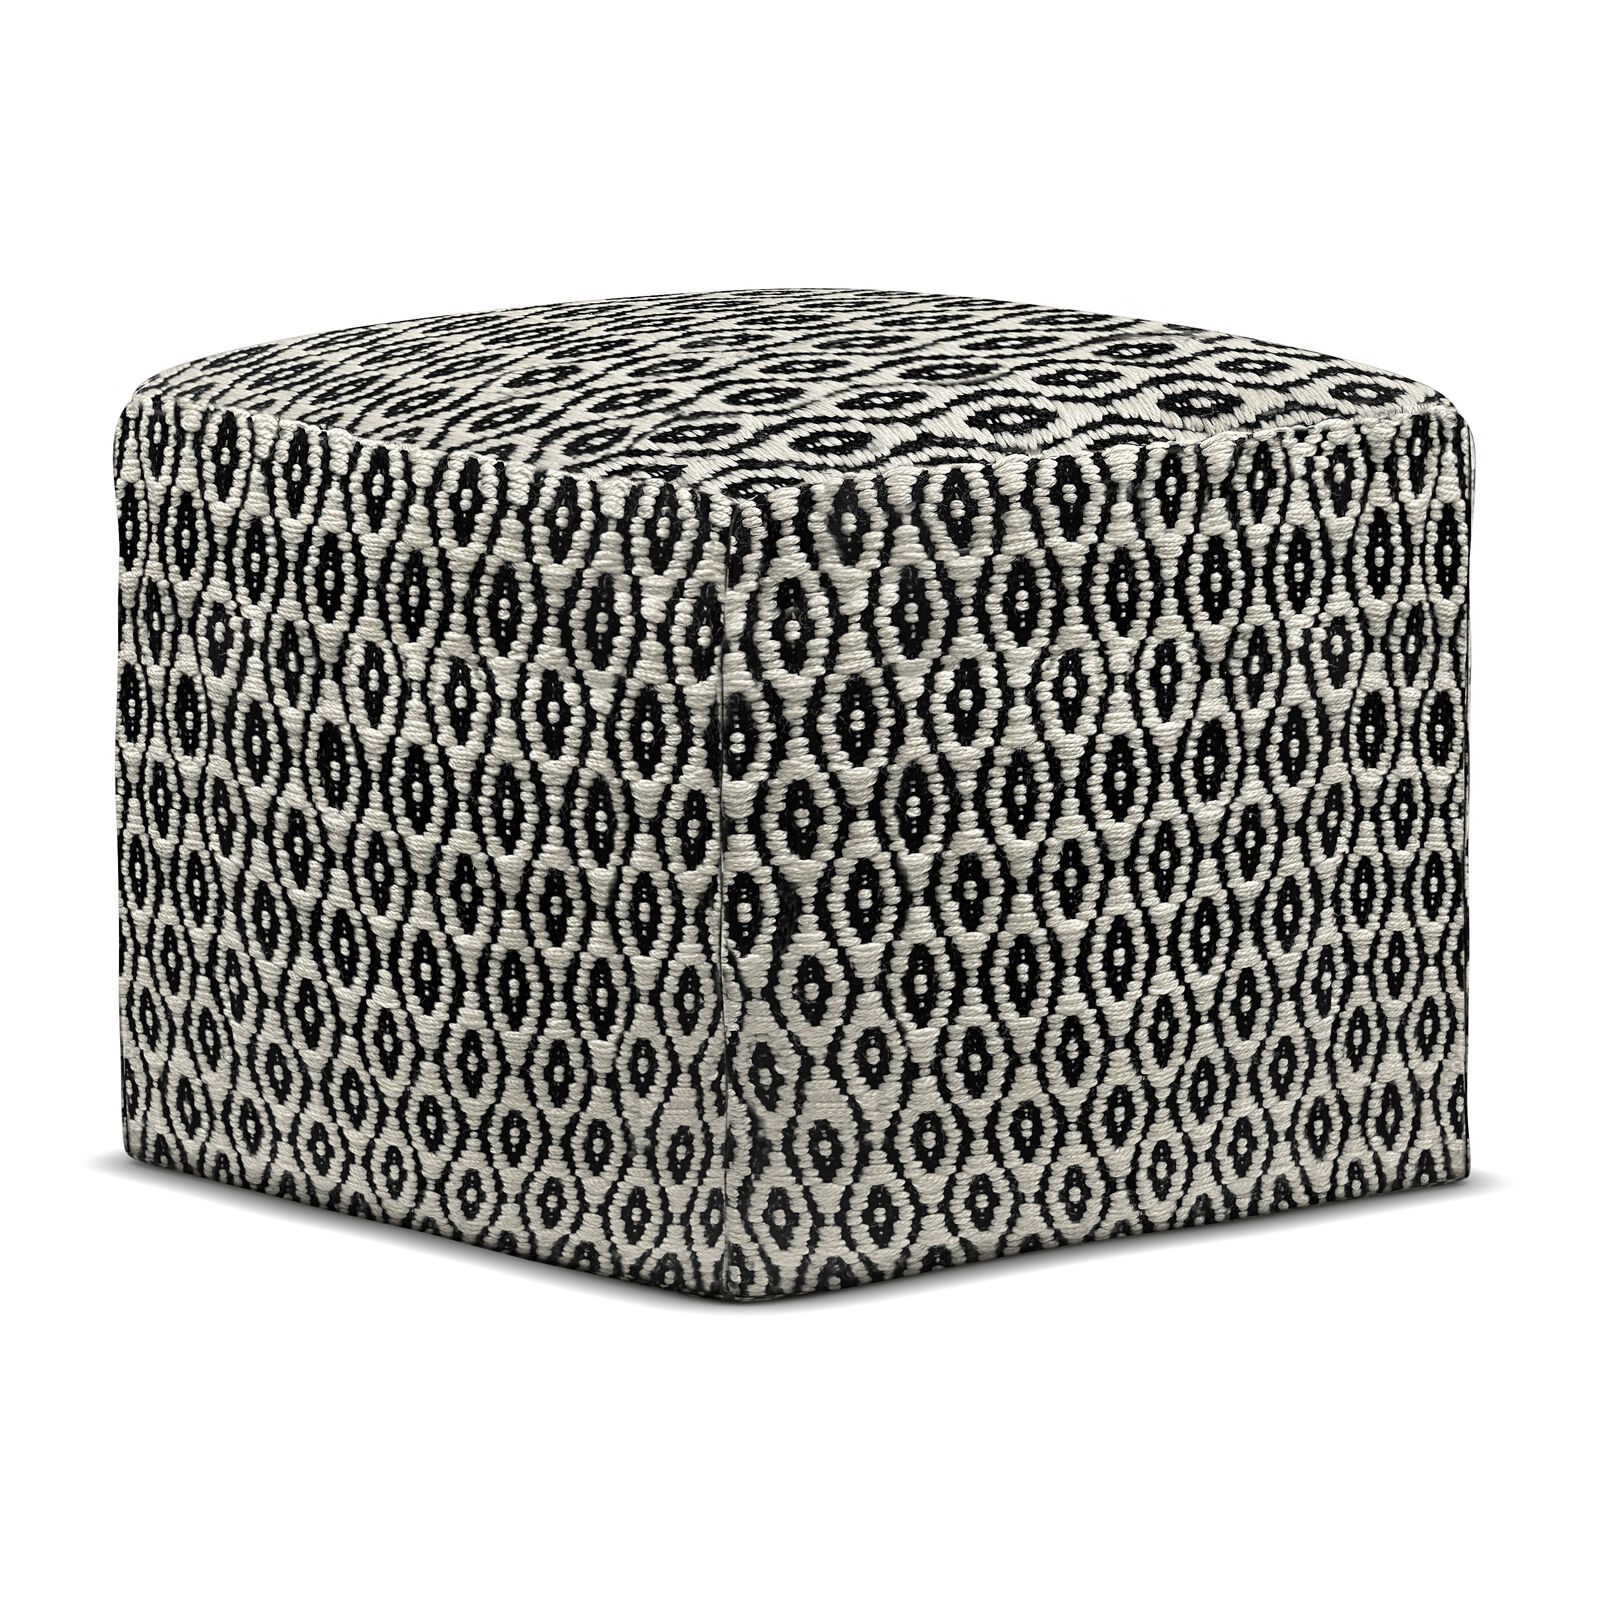 Kiana Boho Square Woven Outdoor/ Indoor Pouf in Black and White Recycled PET ...